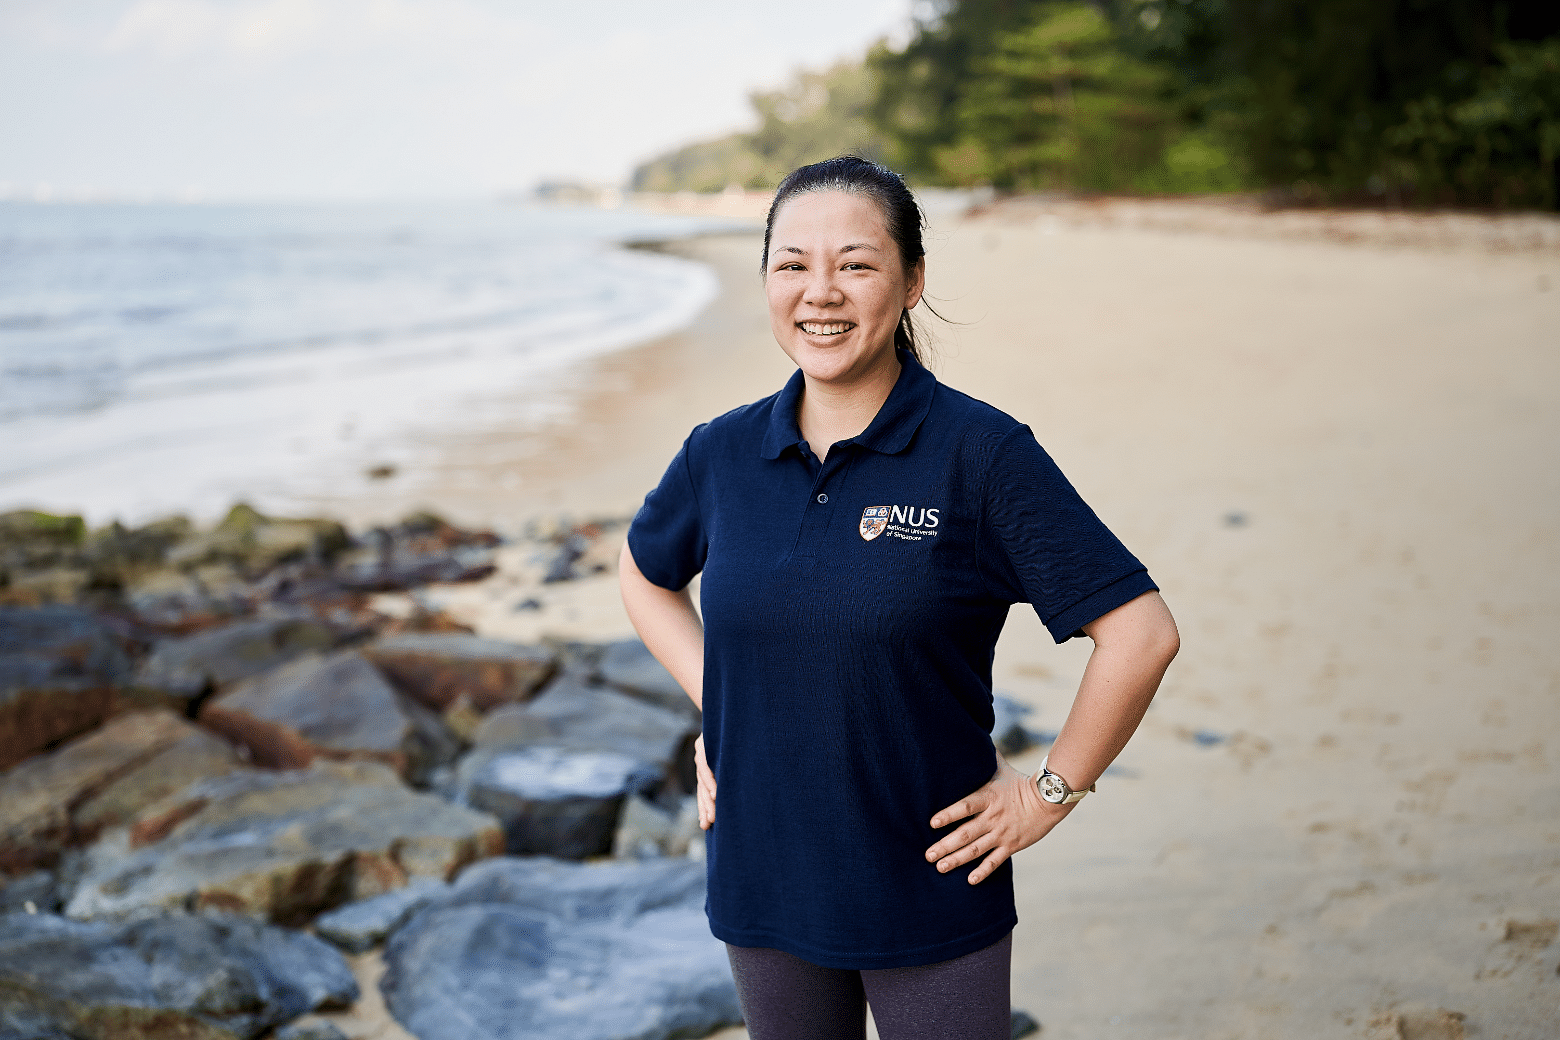 Neo Mei Lin, Tropical Marine Science Institute, marine conservation, women empowerment, gender equality